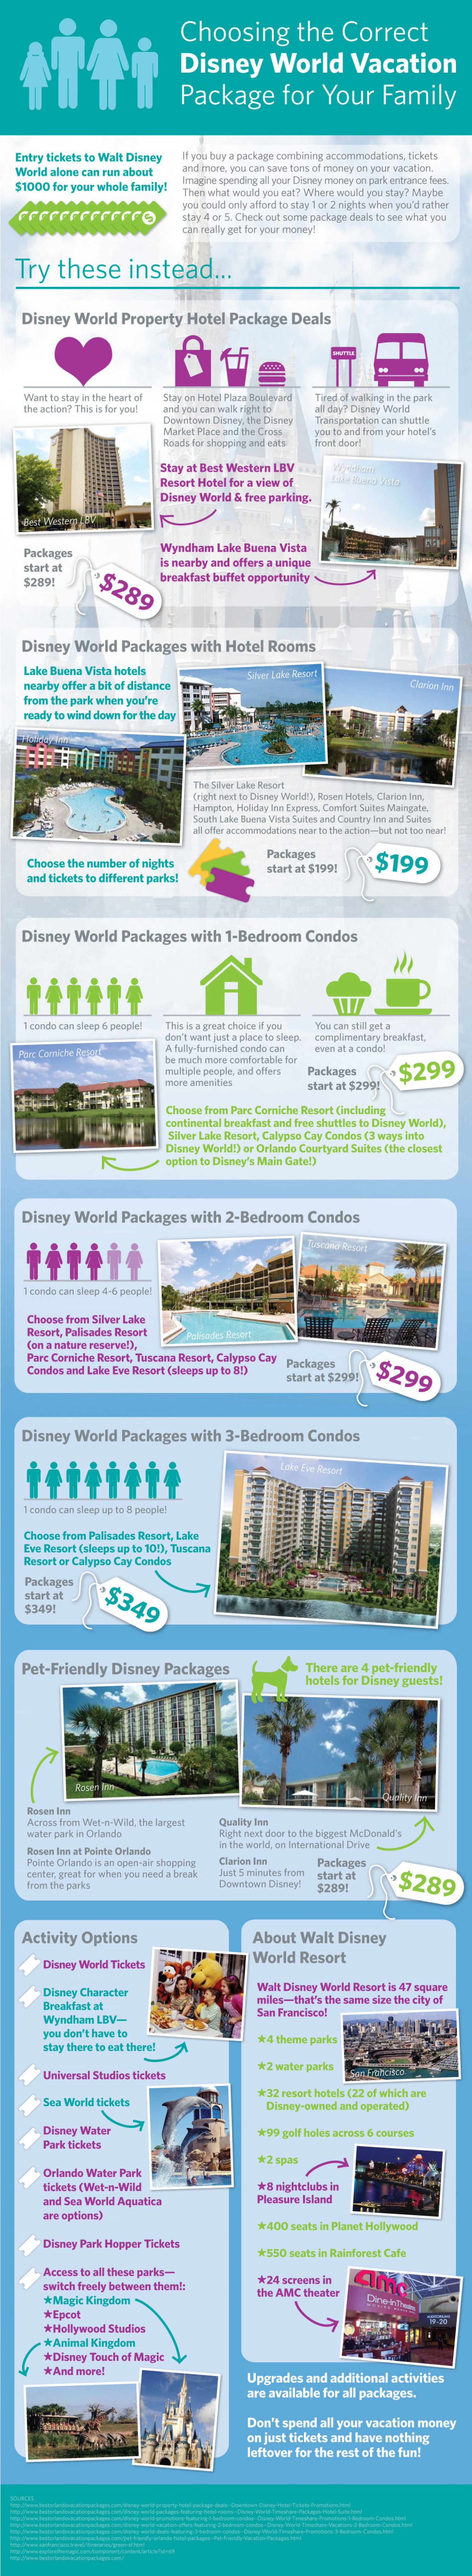 Choosing the Correct Disney World Vacation Package for Your Family